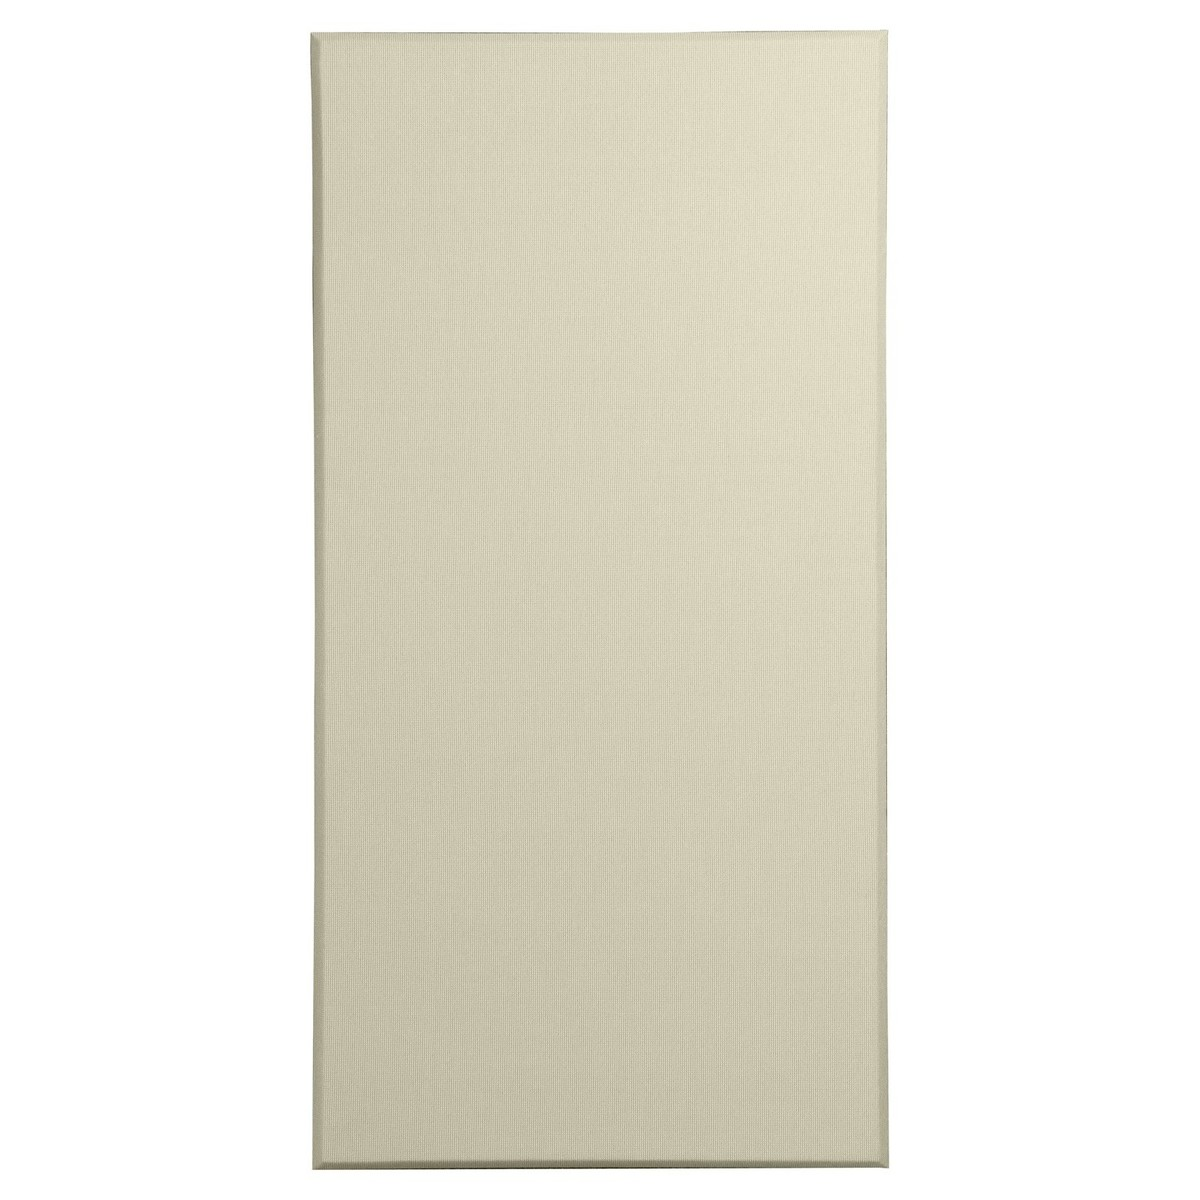 Click to view product details and reviews for Primacoustic 1 Broadband In Beige Beveled Edge Pack Of 4.